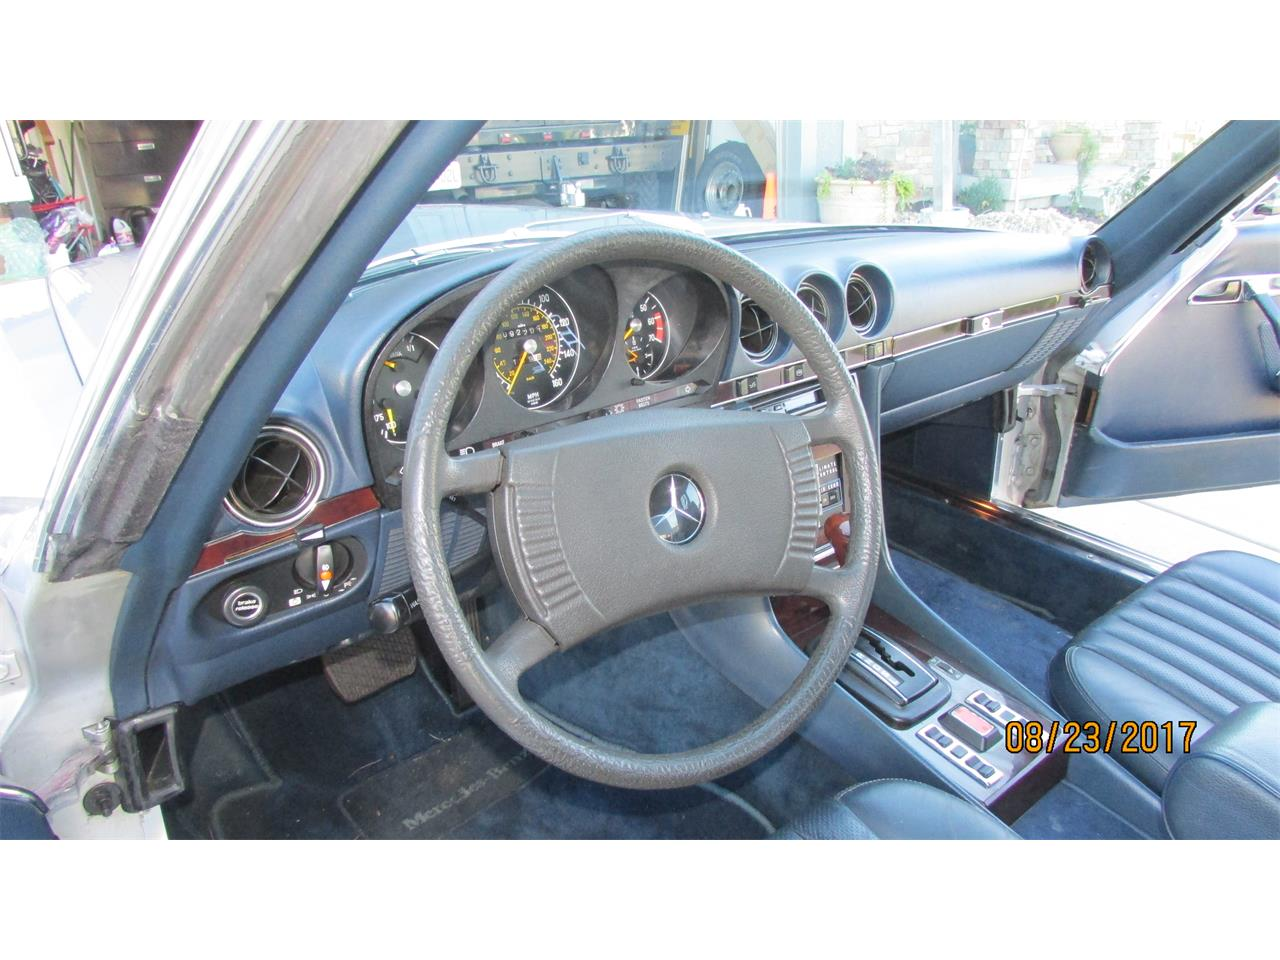 Large Picture of '79 Mercedes-Benz SL-Class located in Lees Summit Missouri - $16,900.00 Offered by a Private Seller - M6OQ